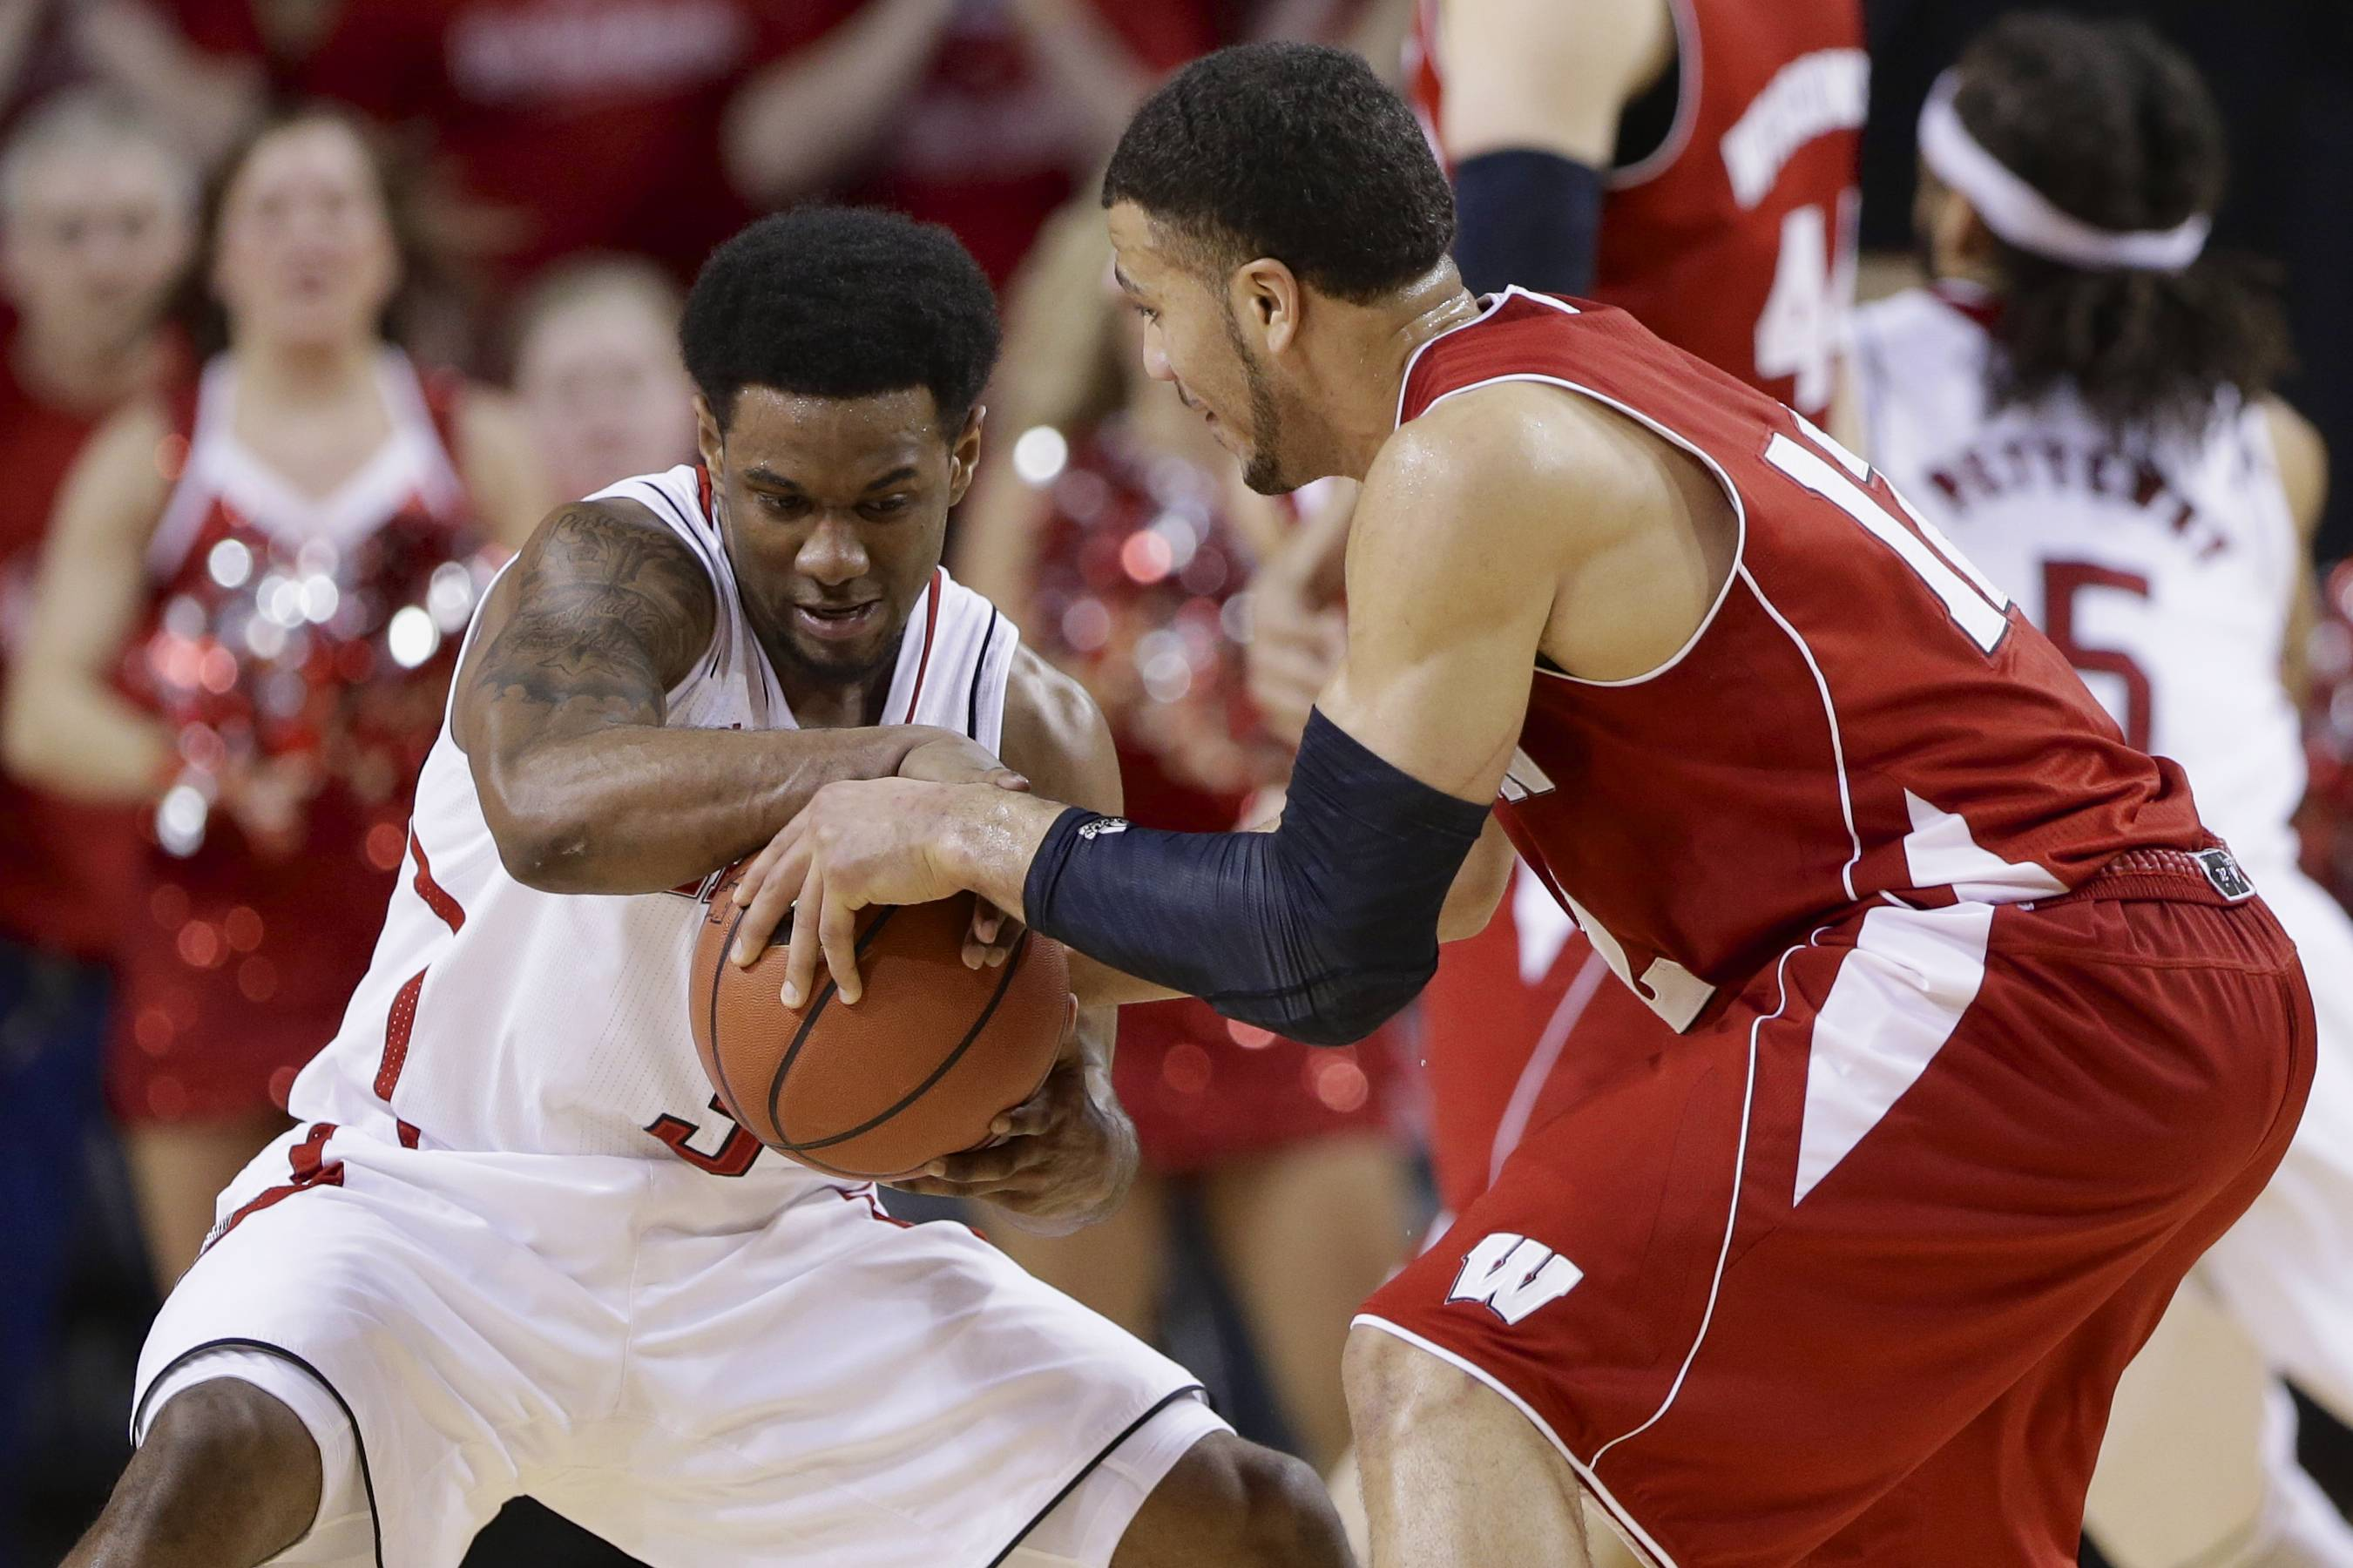 Nebraska's Benny Parker (3) grabs the ball from Wisconsin's Traevon Jackson (12) in the second half in Lincoln, Neb., Sunday.